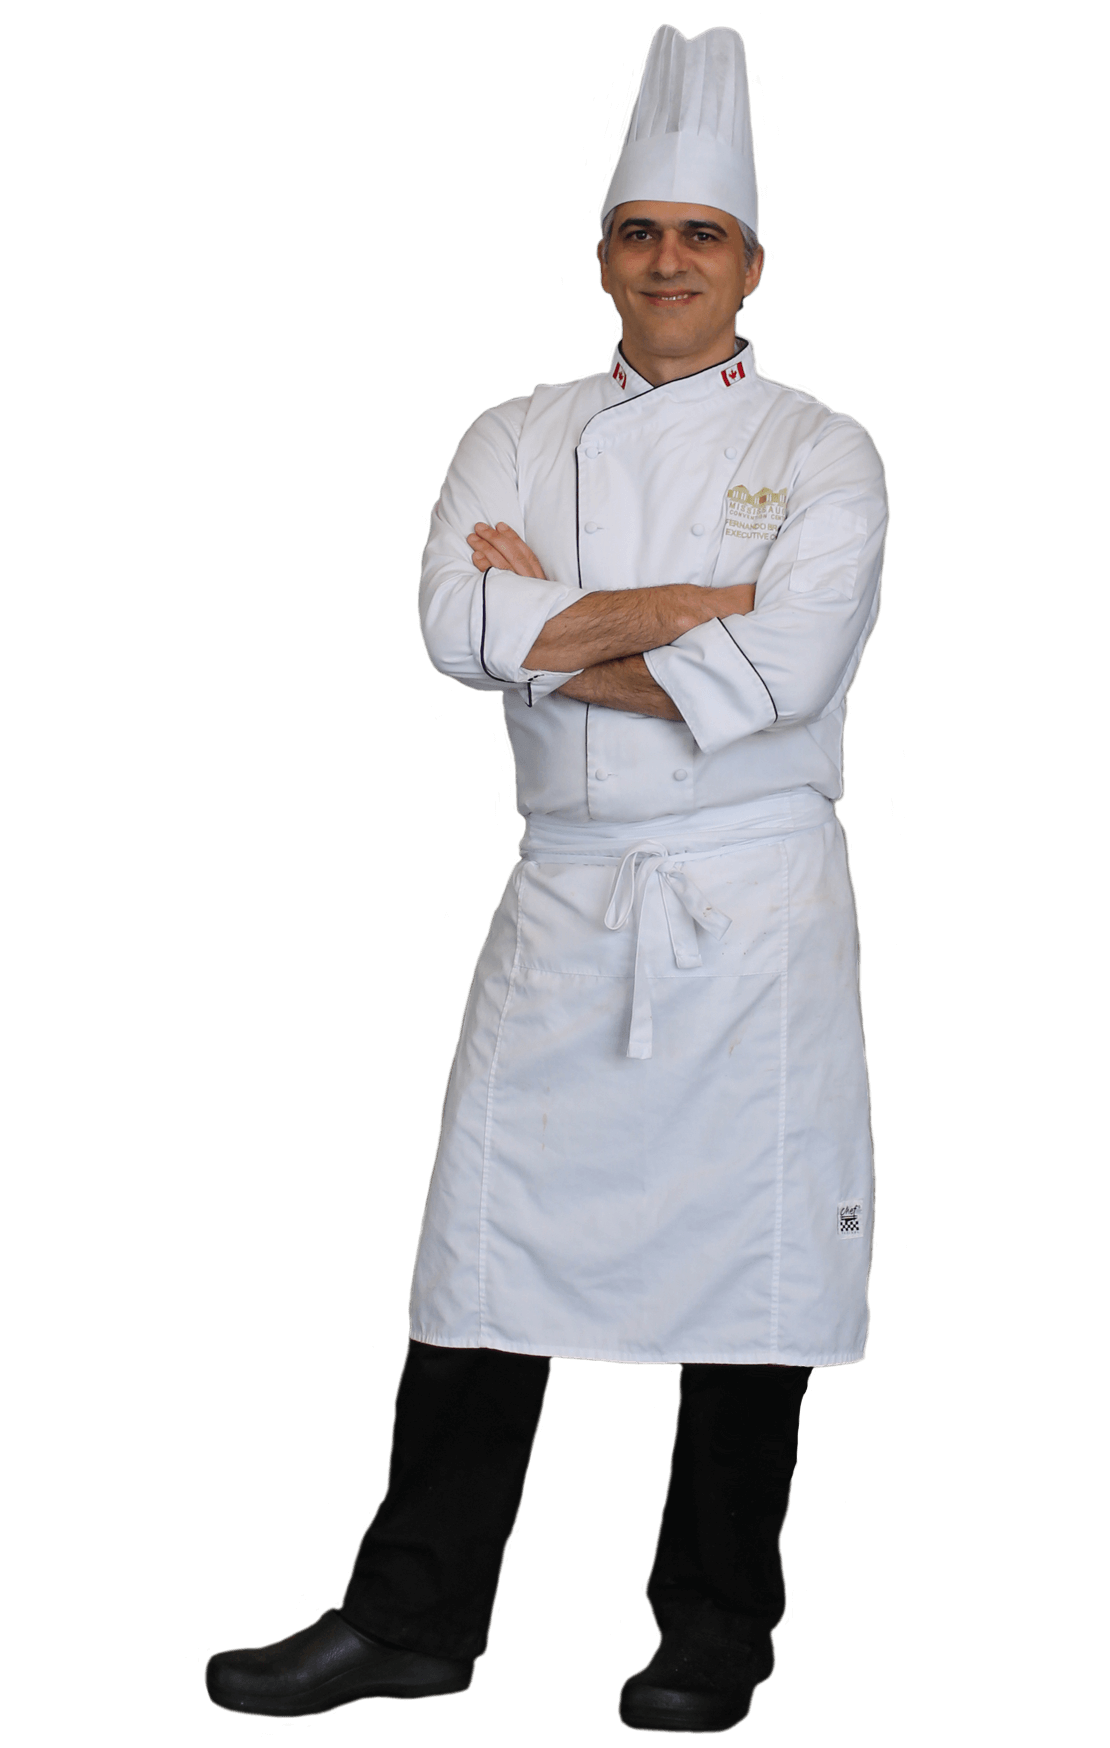 Png chef. Images free download